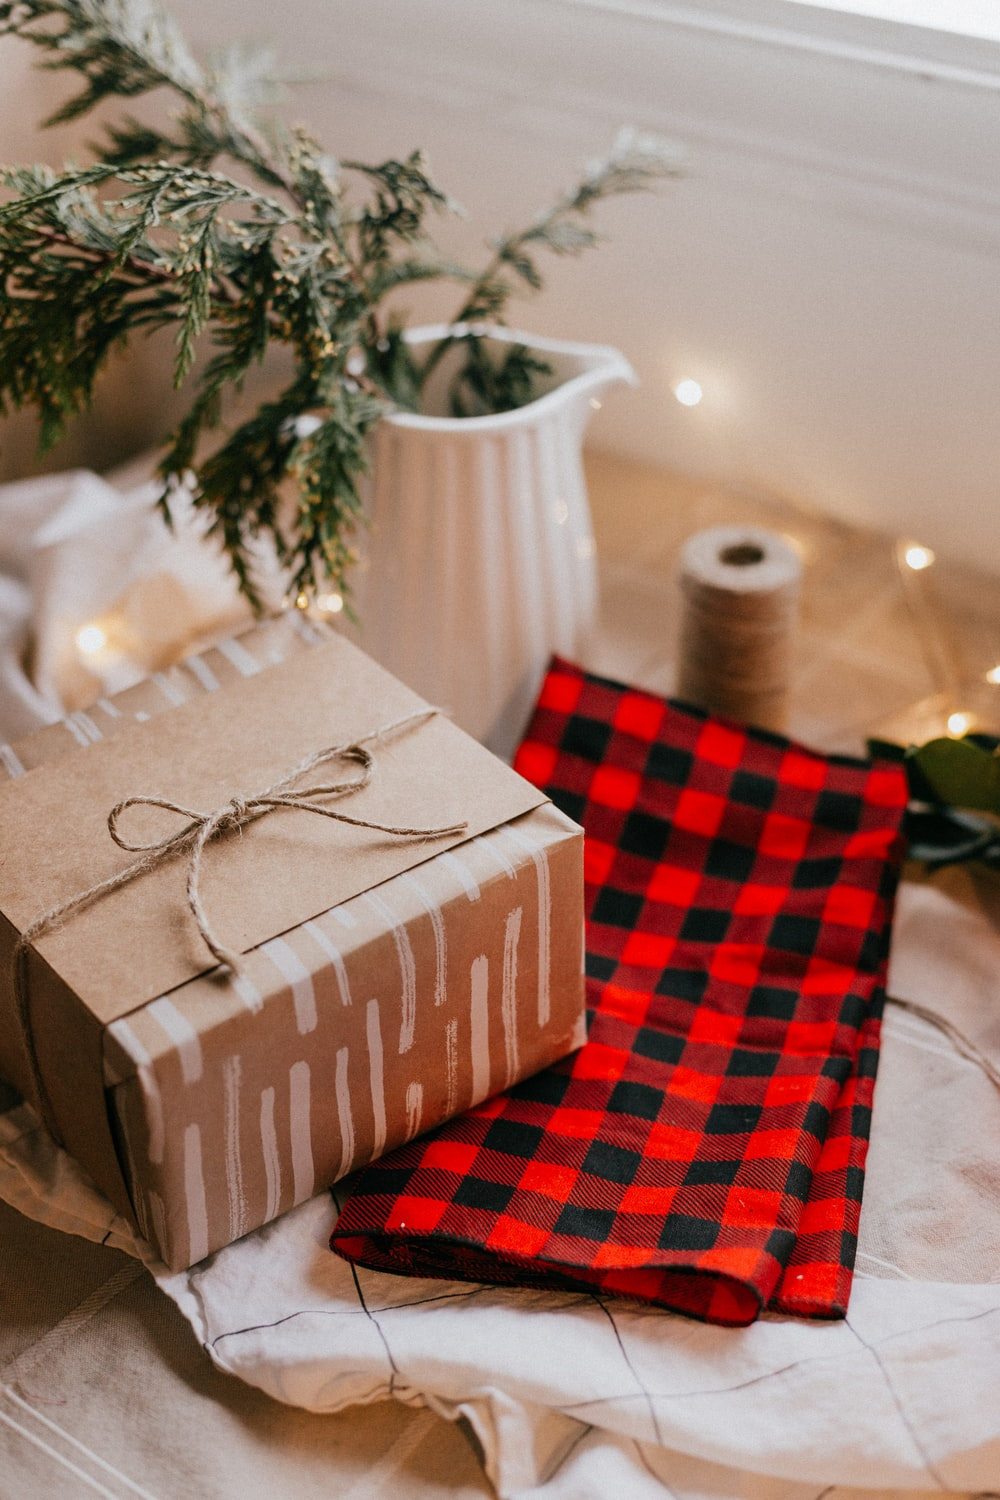 brown and white gift box on red and white checkered textile